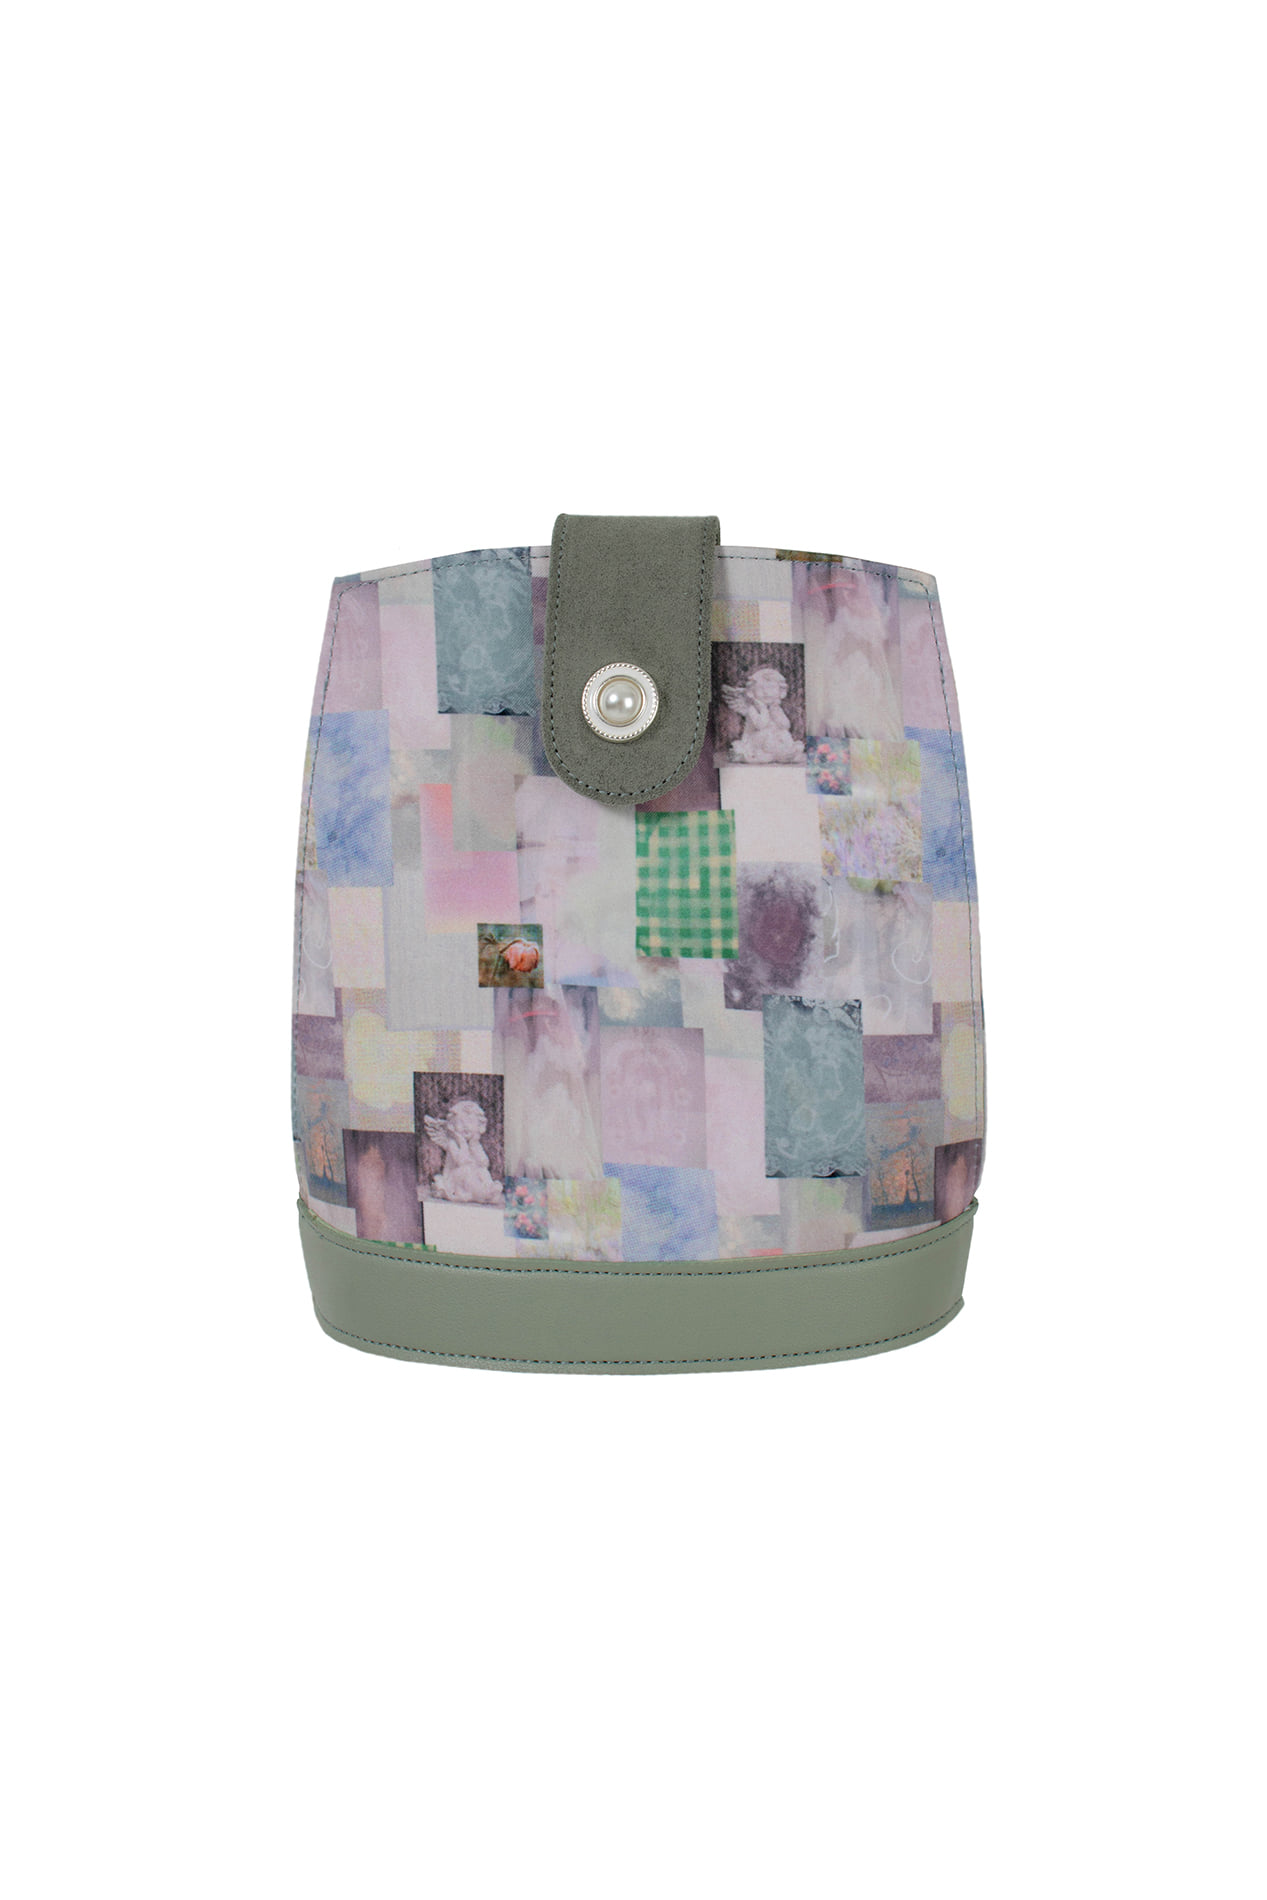 Malila mini bag (collage mint)